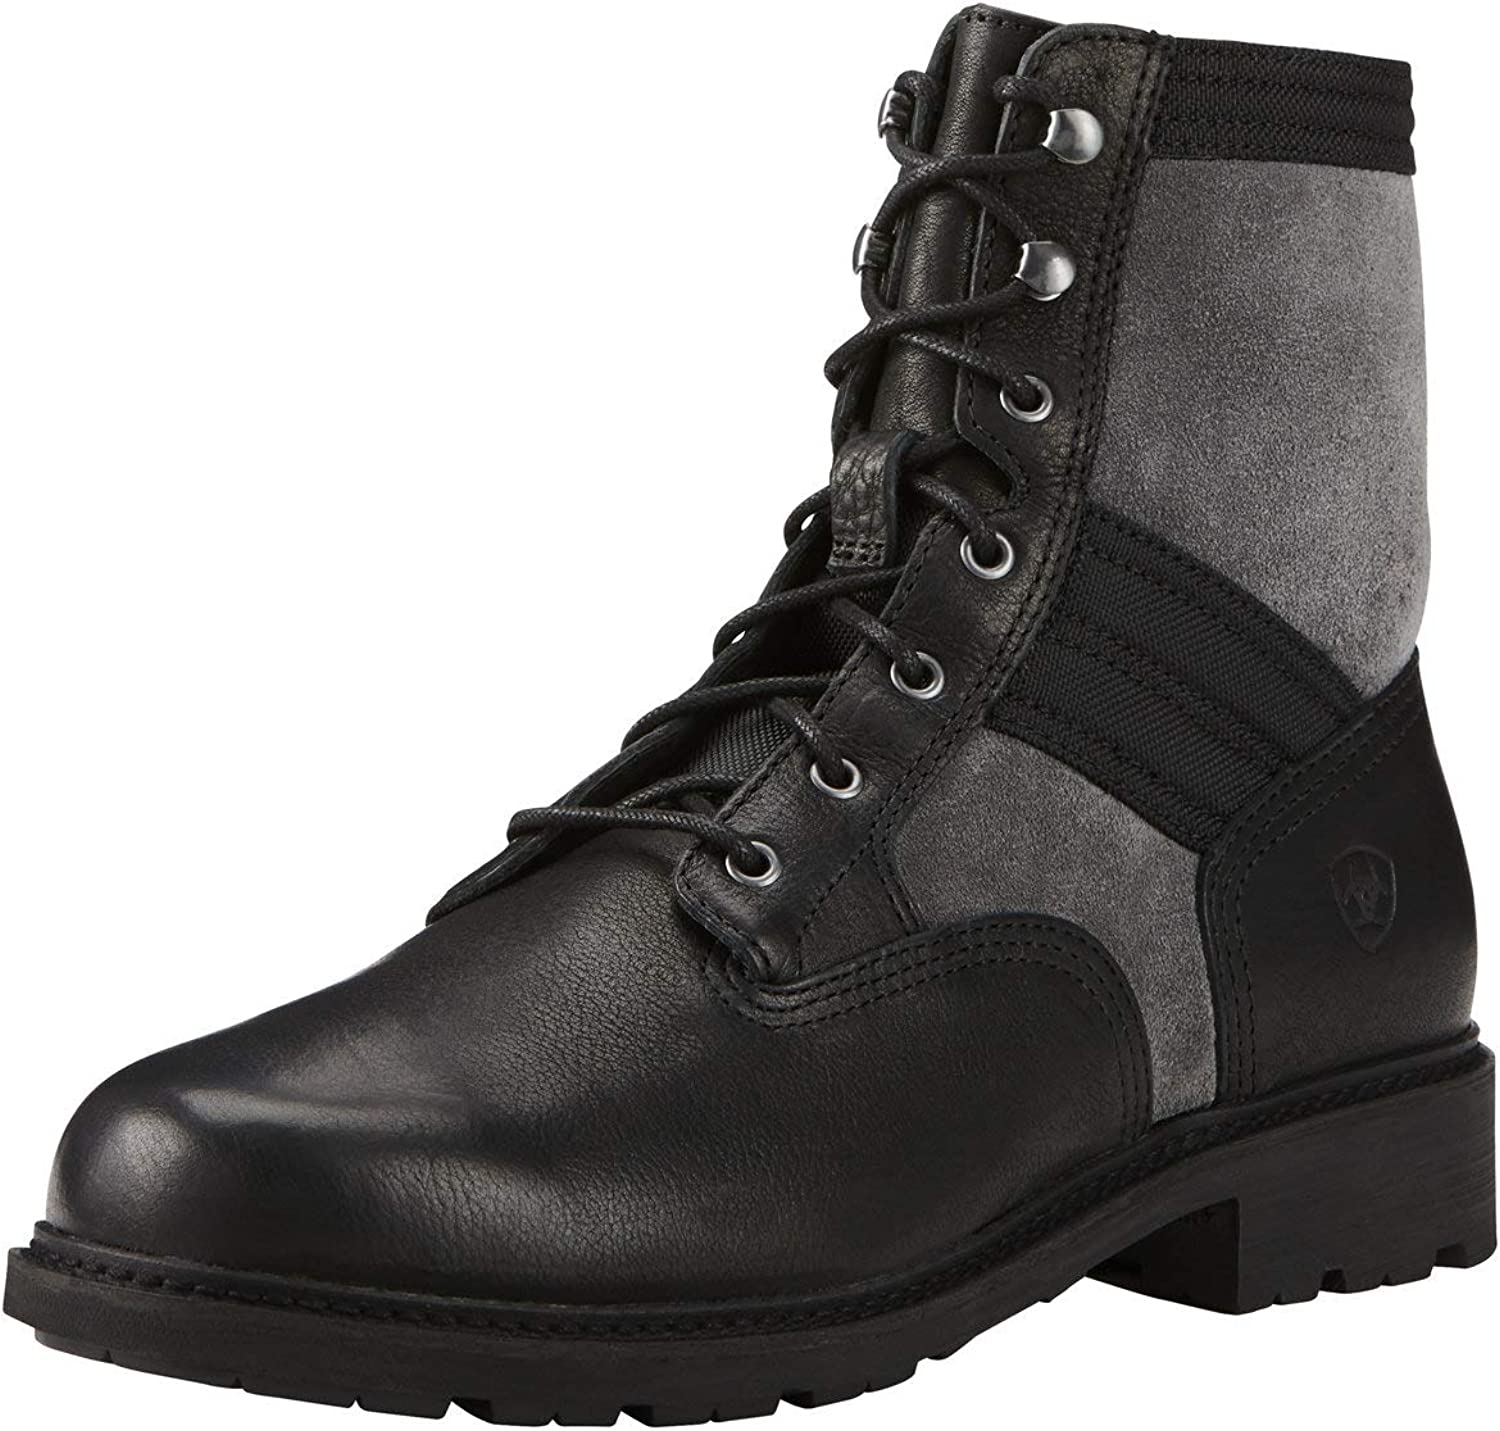 Ariat Men's Sale item Easy Street Financial sales sale Boot Lifestyle Lacer